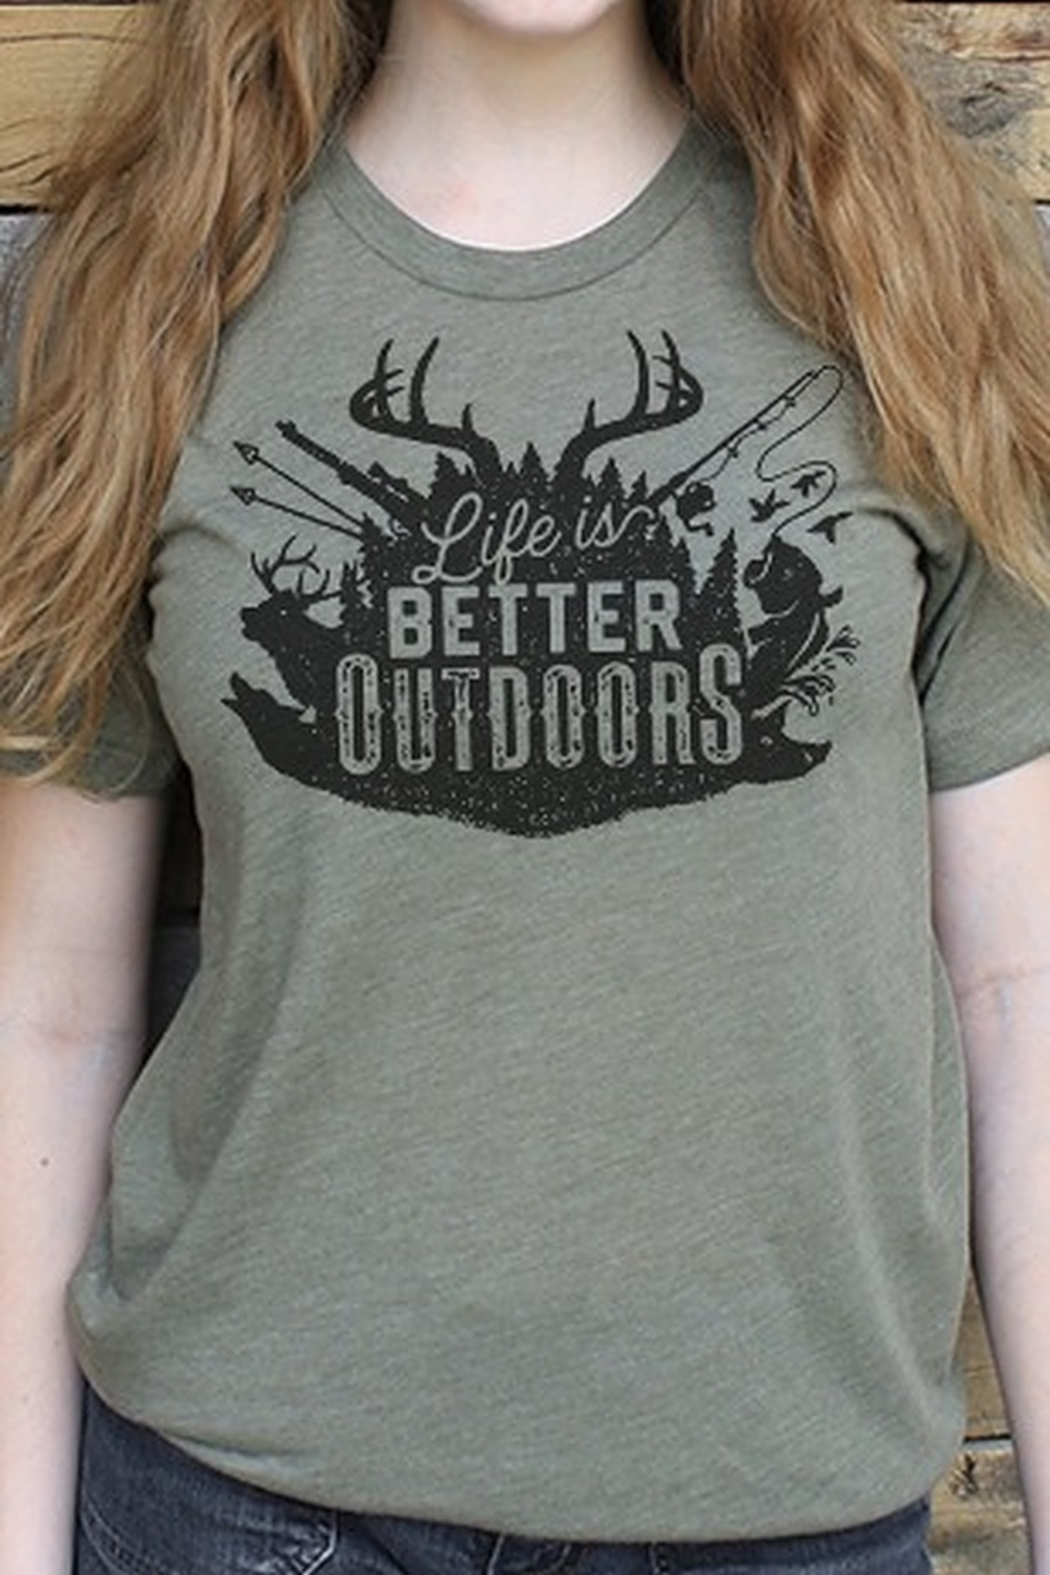 Mason Jar Label Life is Better Outdoors - Main Image